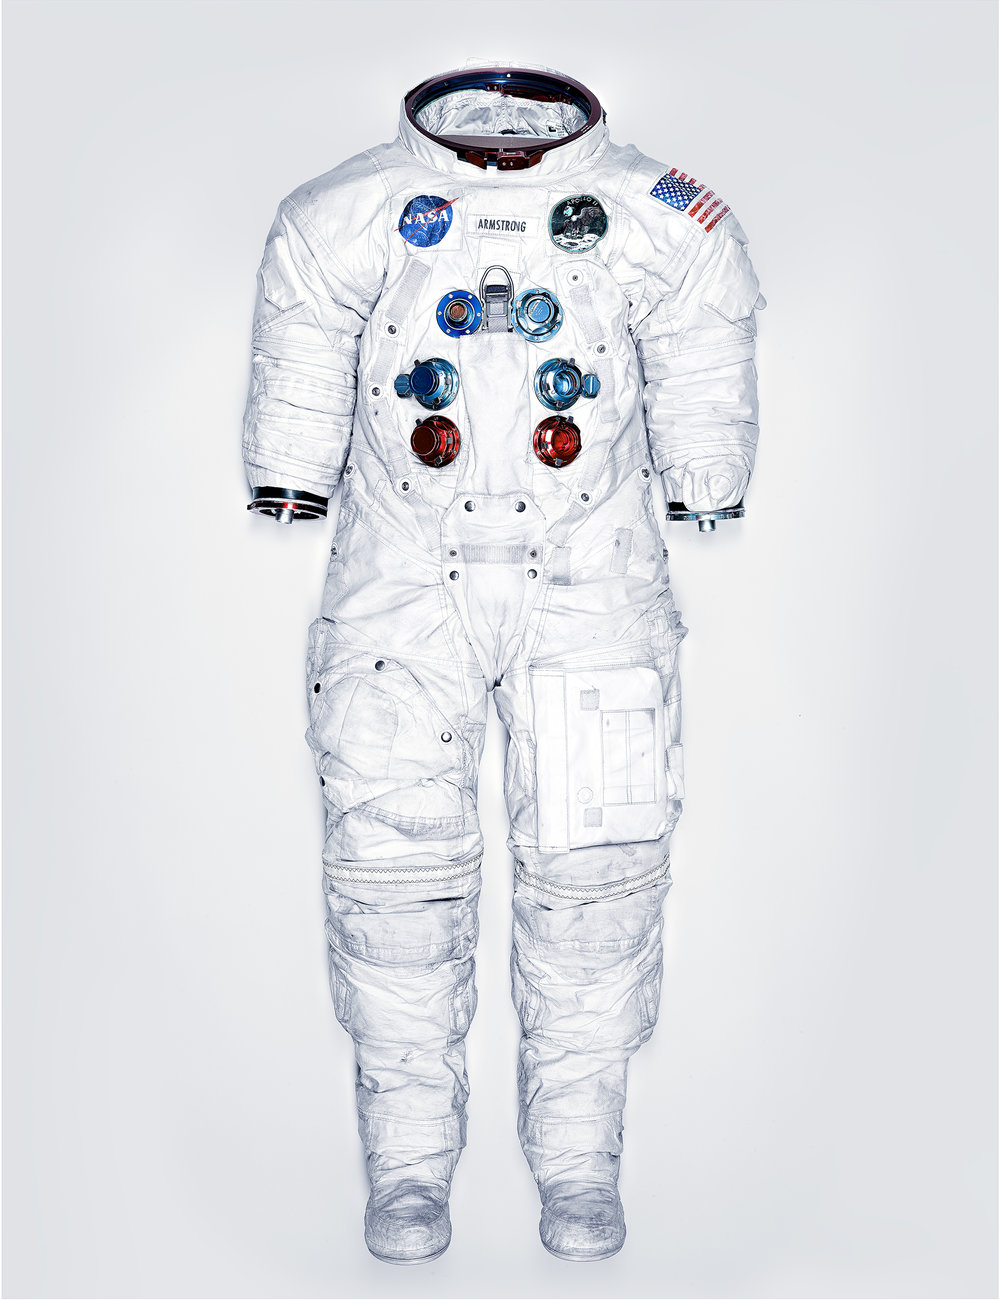 NEIL ARMSTRONG'S APOLLO SPACE SUIT